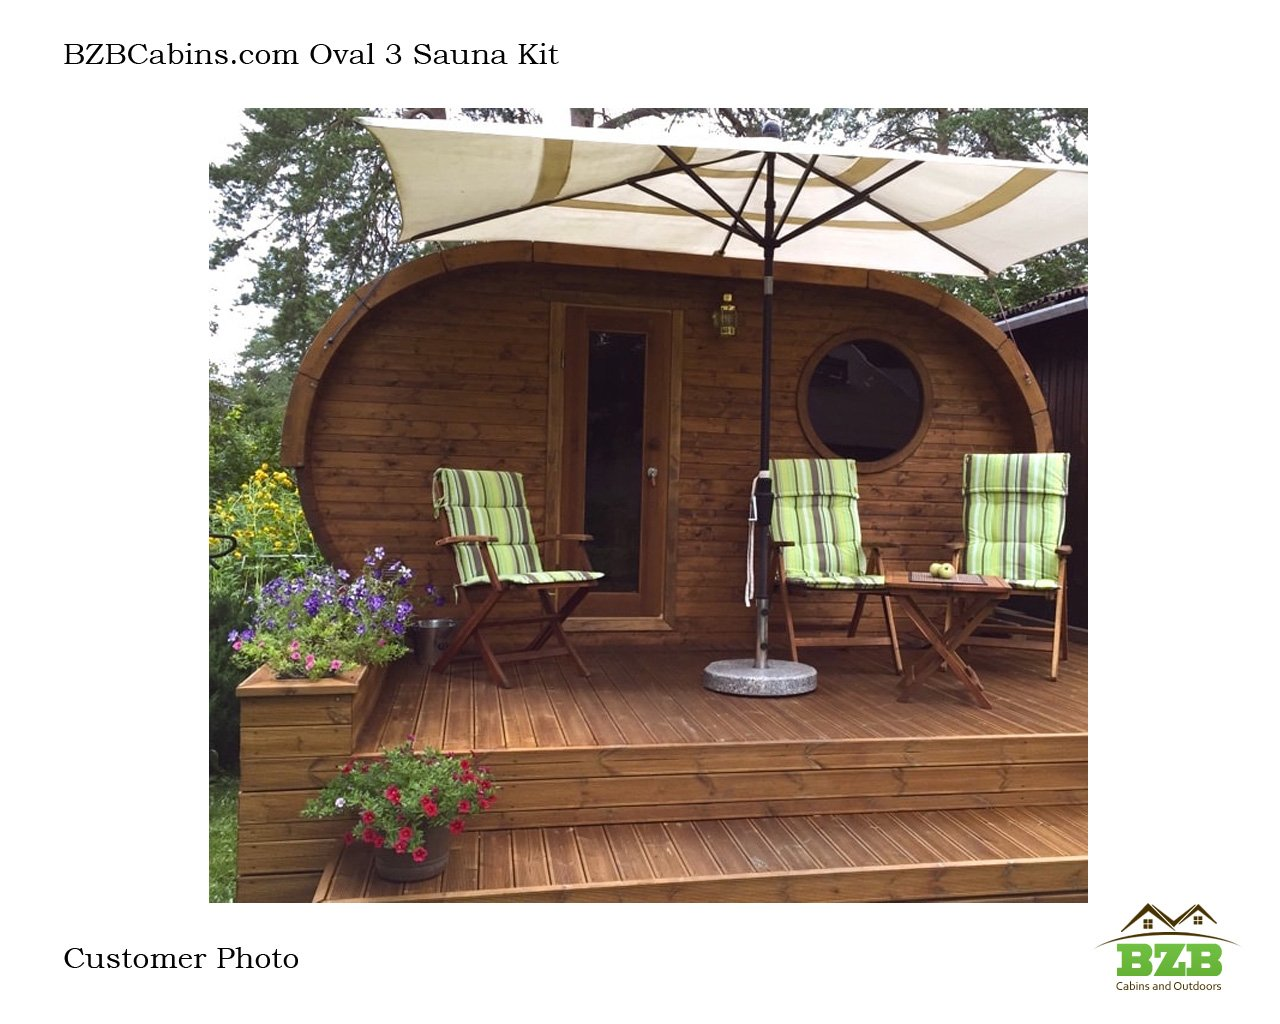 W3 Oval Shaped Barrel Sauna With 3 Rooms Bzb Cabins